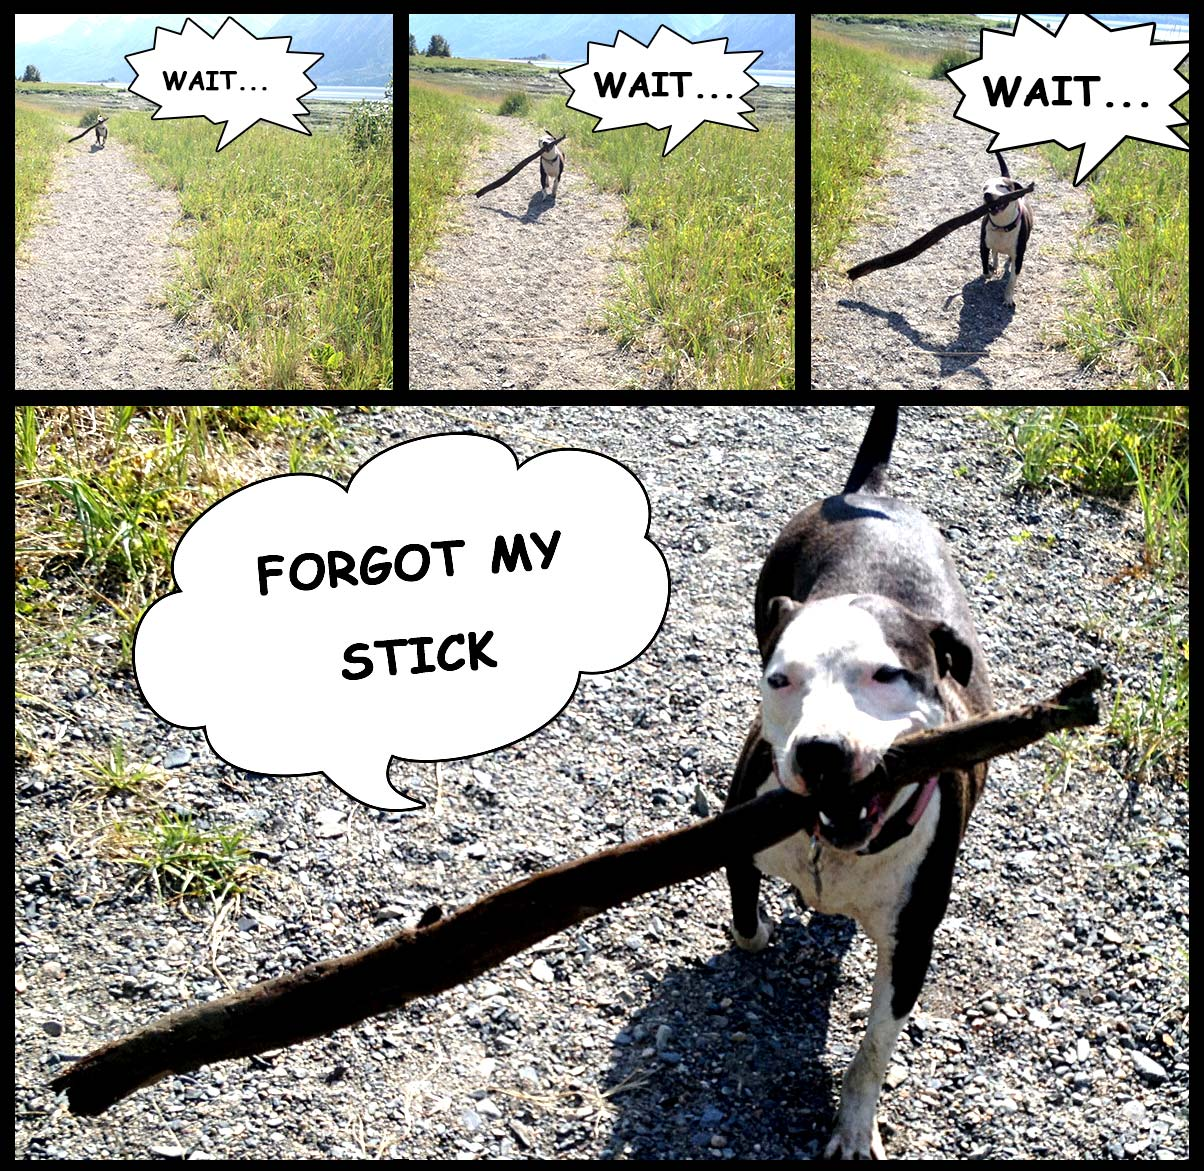 Anyone with a stick-obsessed dog could relate to this post.